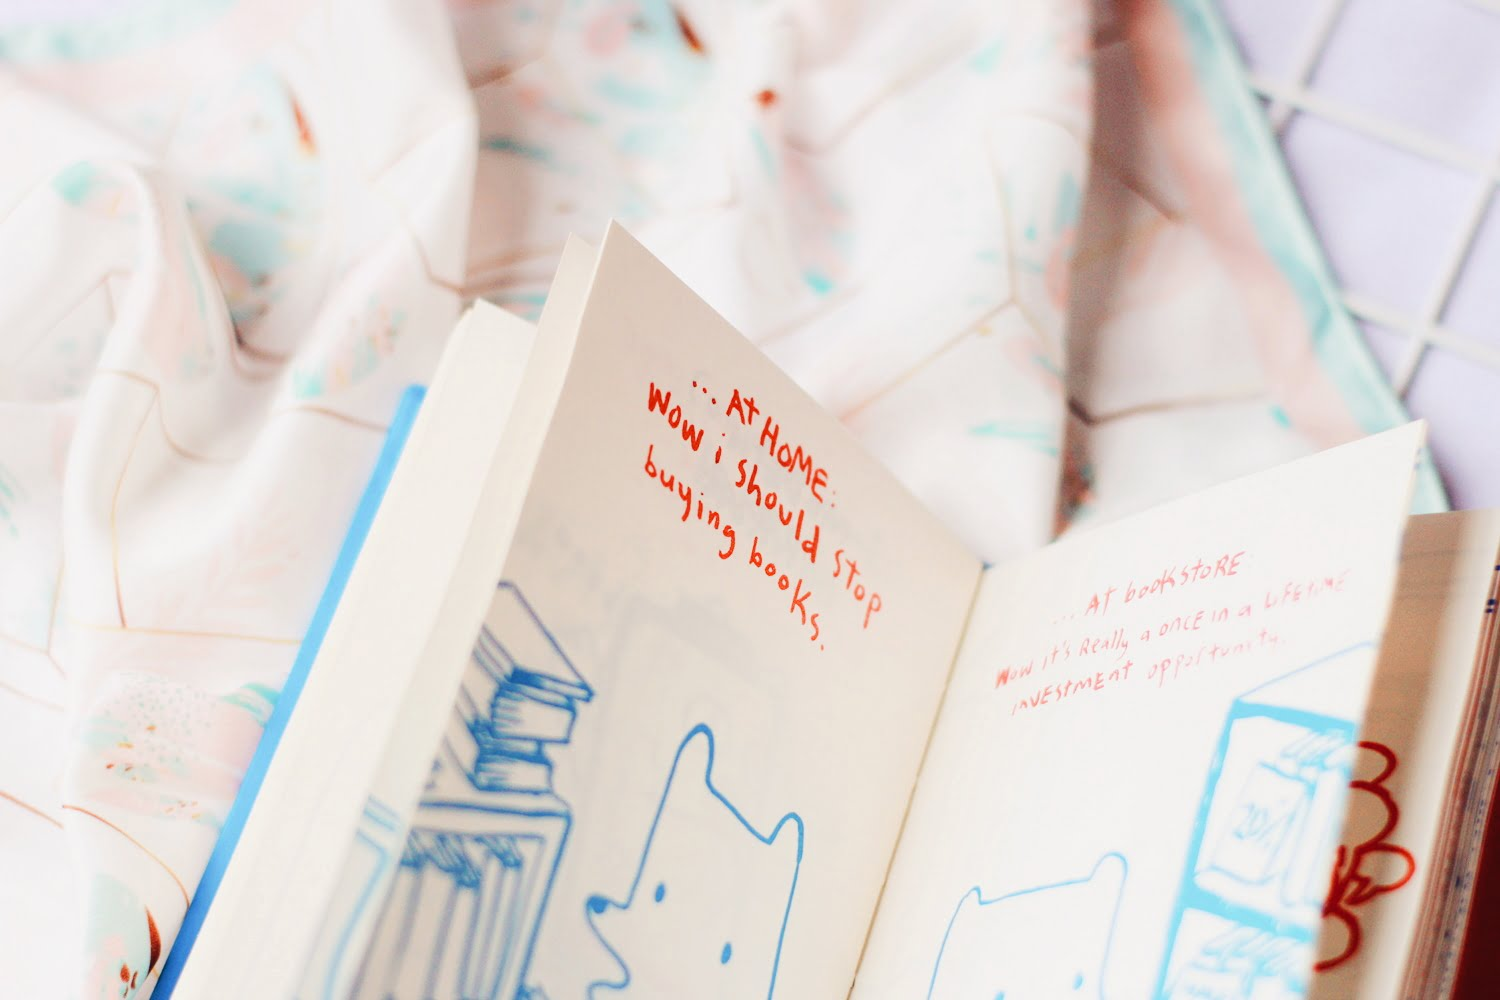 [BOOK REVIEW] The Stories of Choo Choo You're Not as Alone as You Think Karya Citra Marina